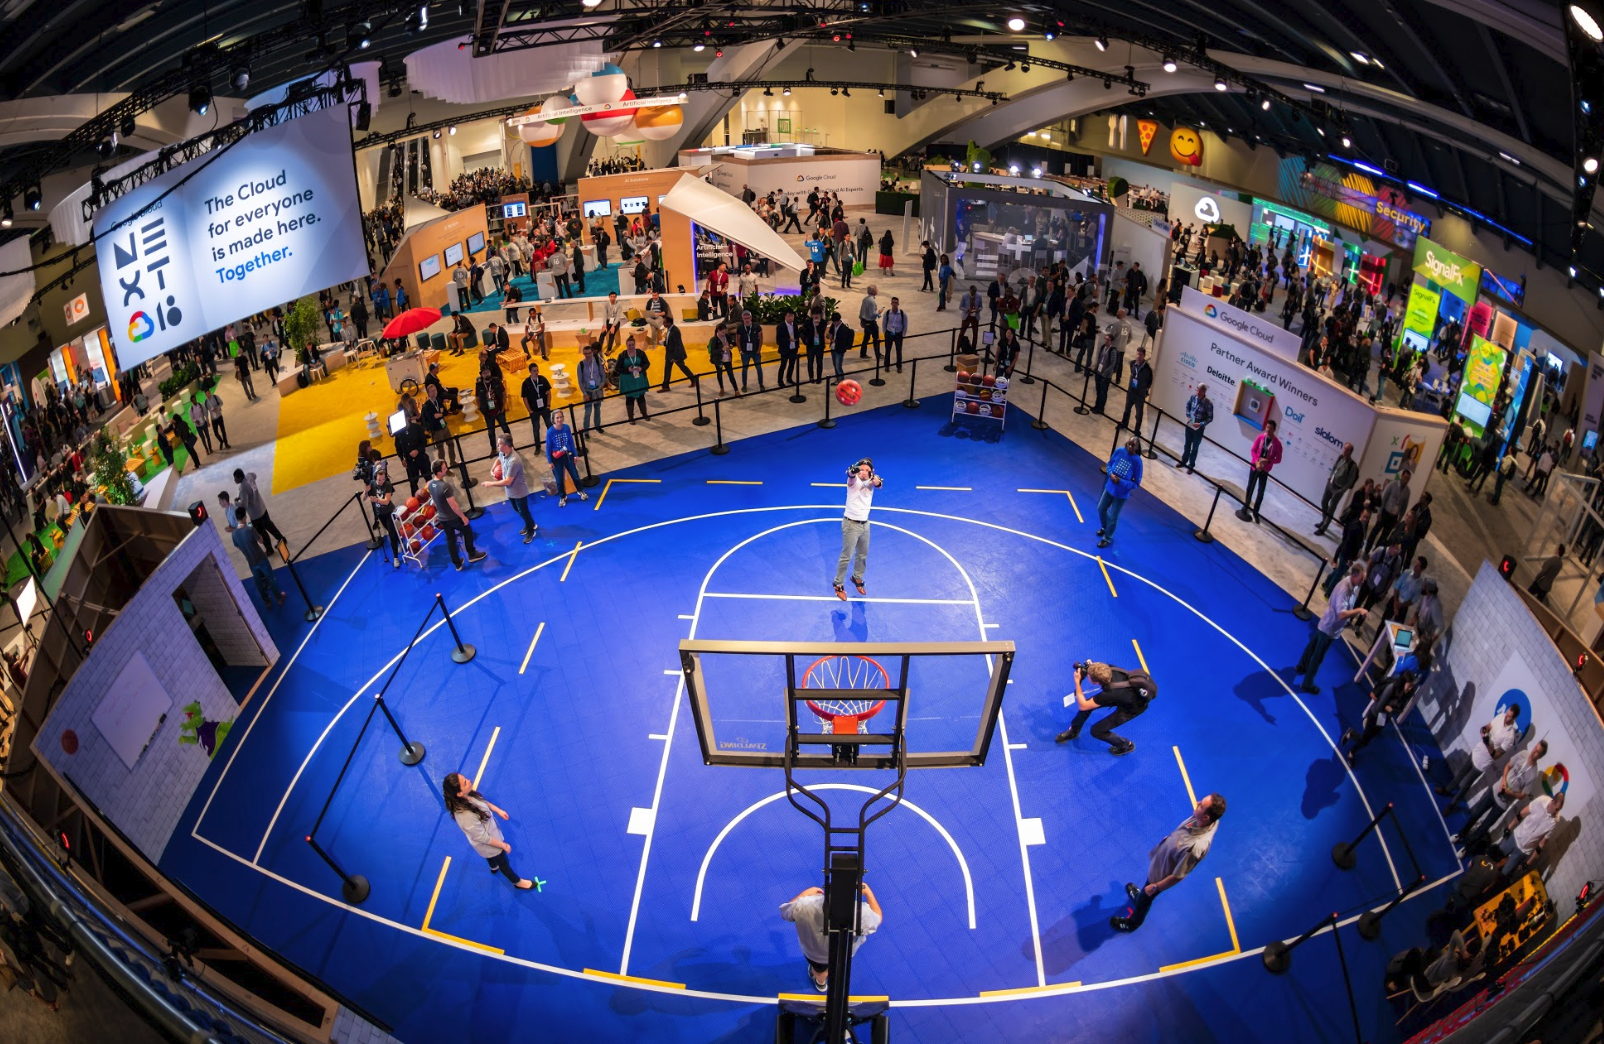 There is no off-season in the cloud - Analyzing NCAA Basketball with